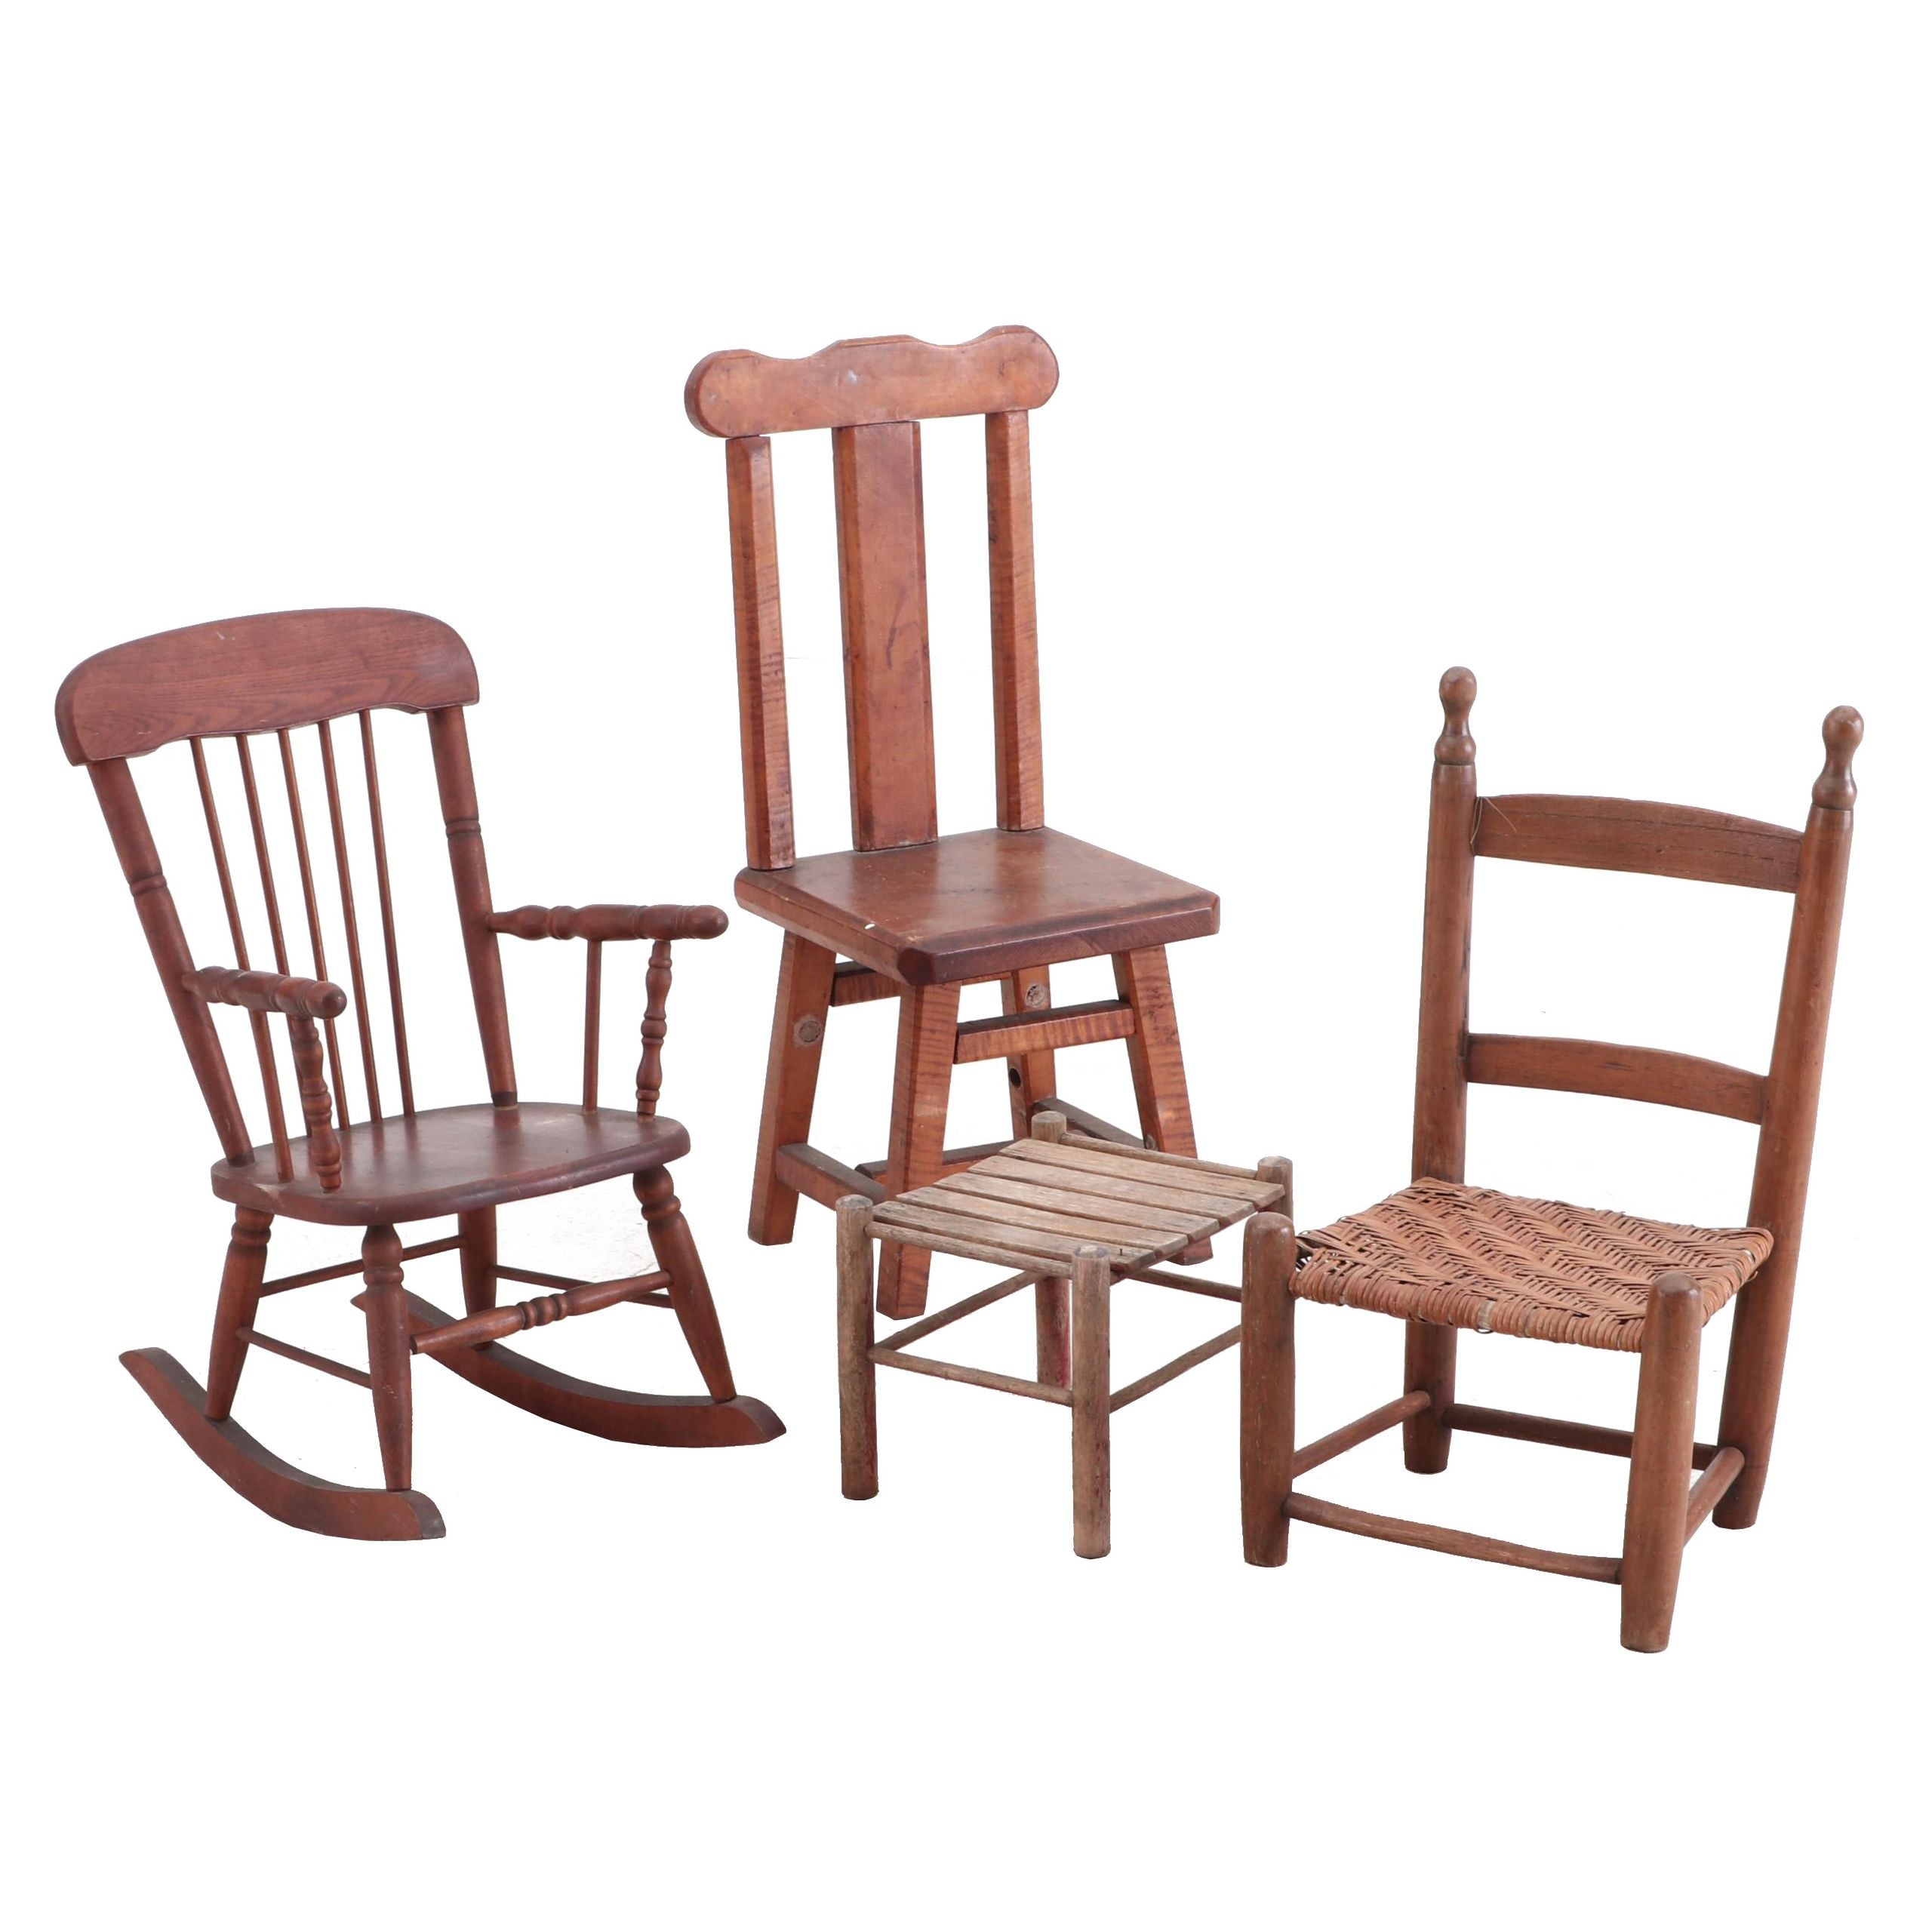 Vintage Children's' Chairs and Stool